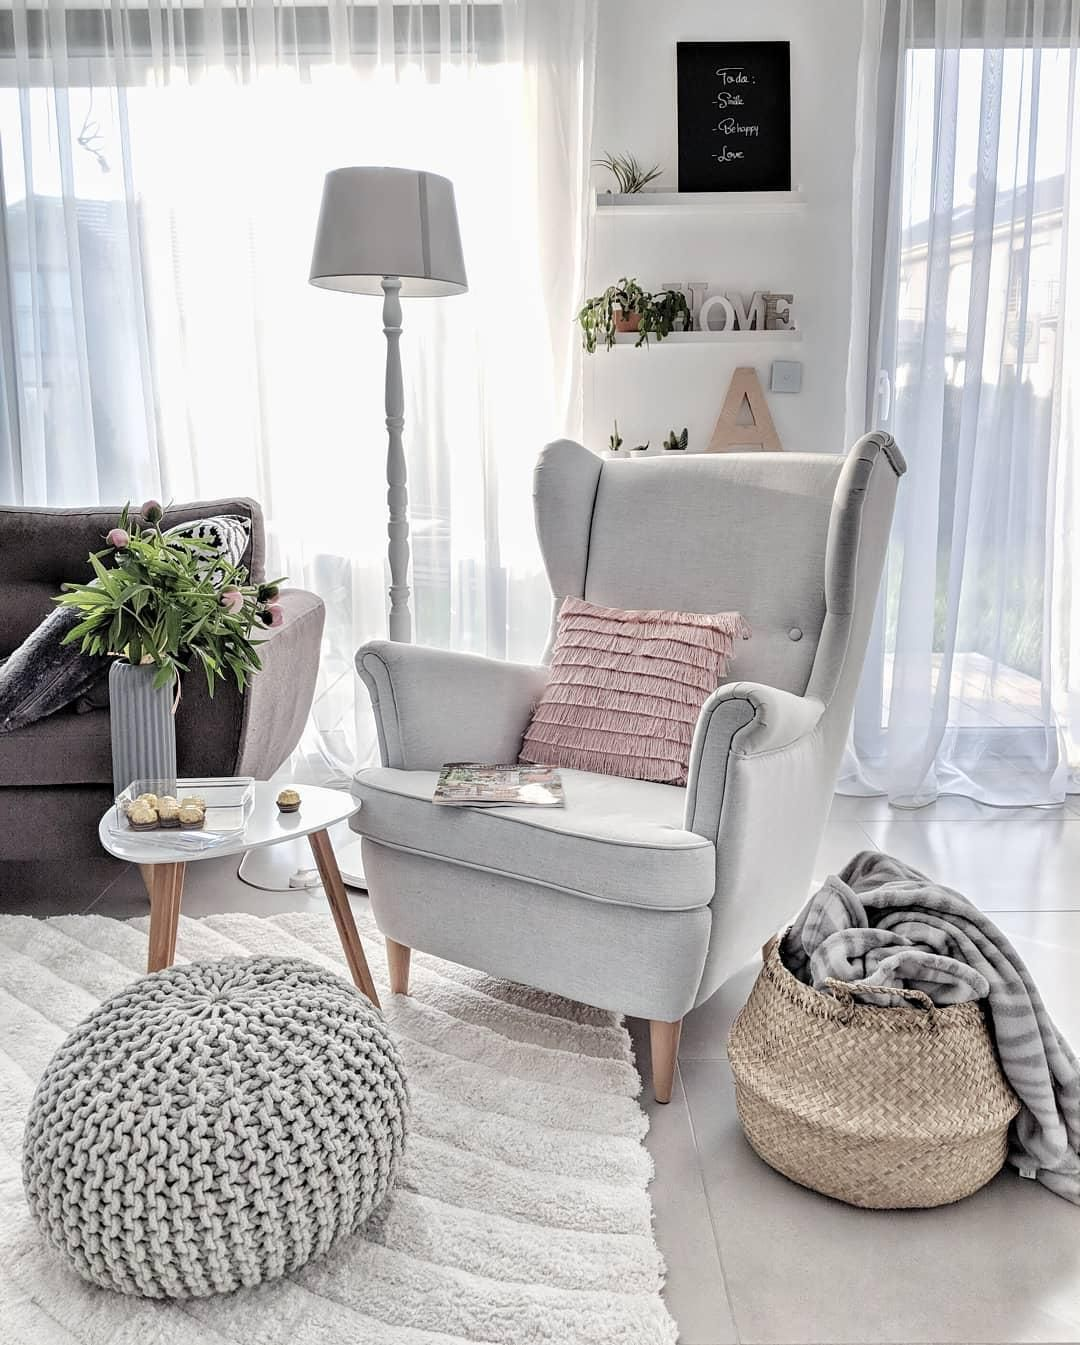 handgefertigter strickpouf dori in 2019 sofas st hle sessel haus wohnzimmer wohnideen. Black Bedroom Furniture Sets. Home Design Ideas